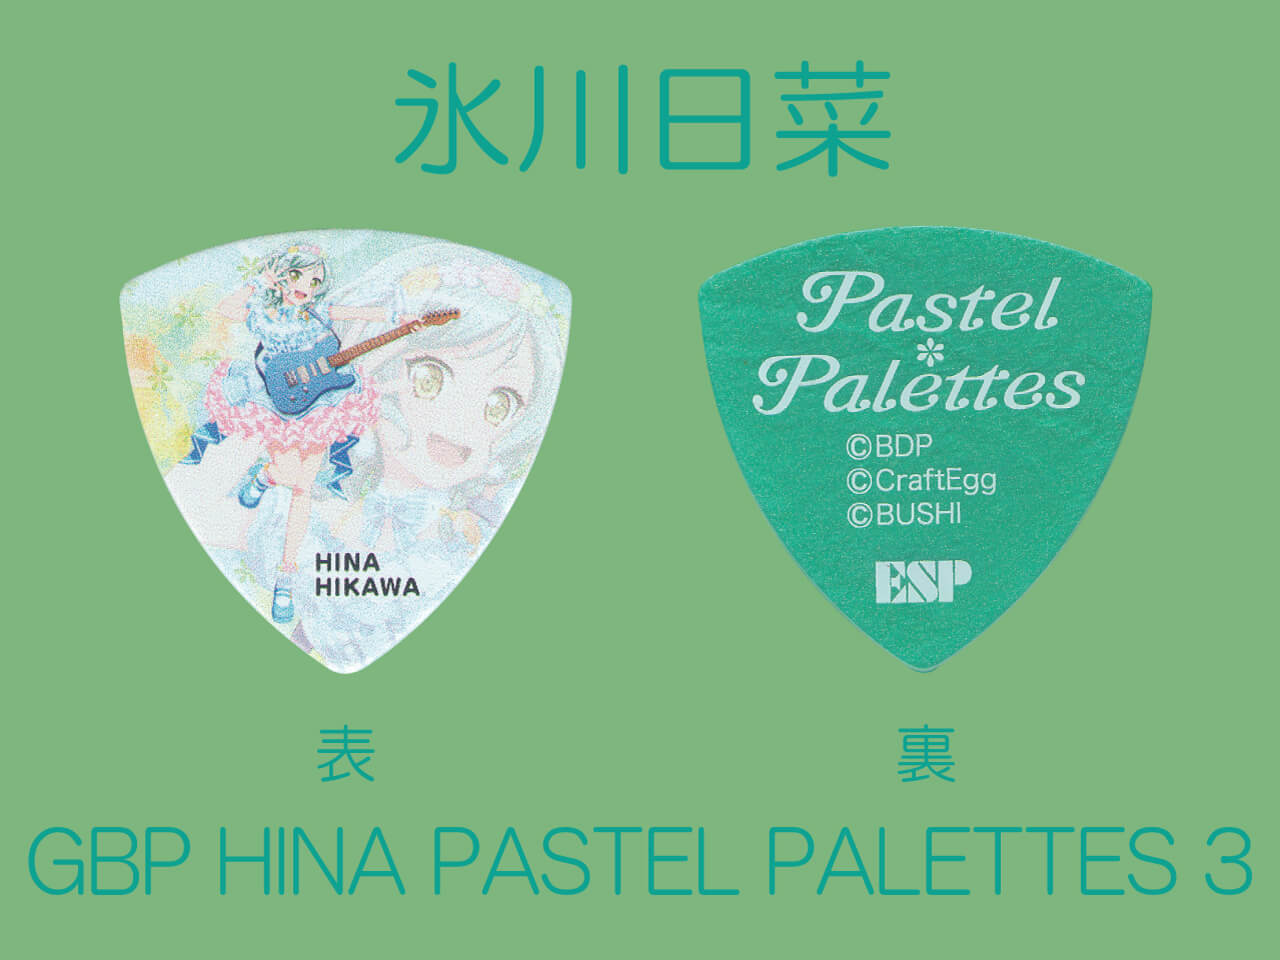 "【ESP×BanG Dream!コラボピック】Pastel*Palettes Character Pick Ver.3 ""氷川日菜""10枚セット(GBP HINA PASTEL PALETTES 3)"